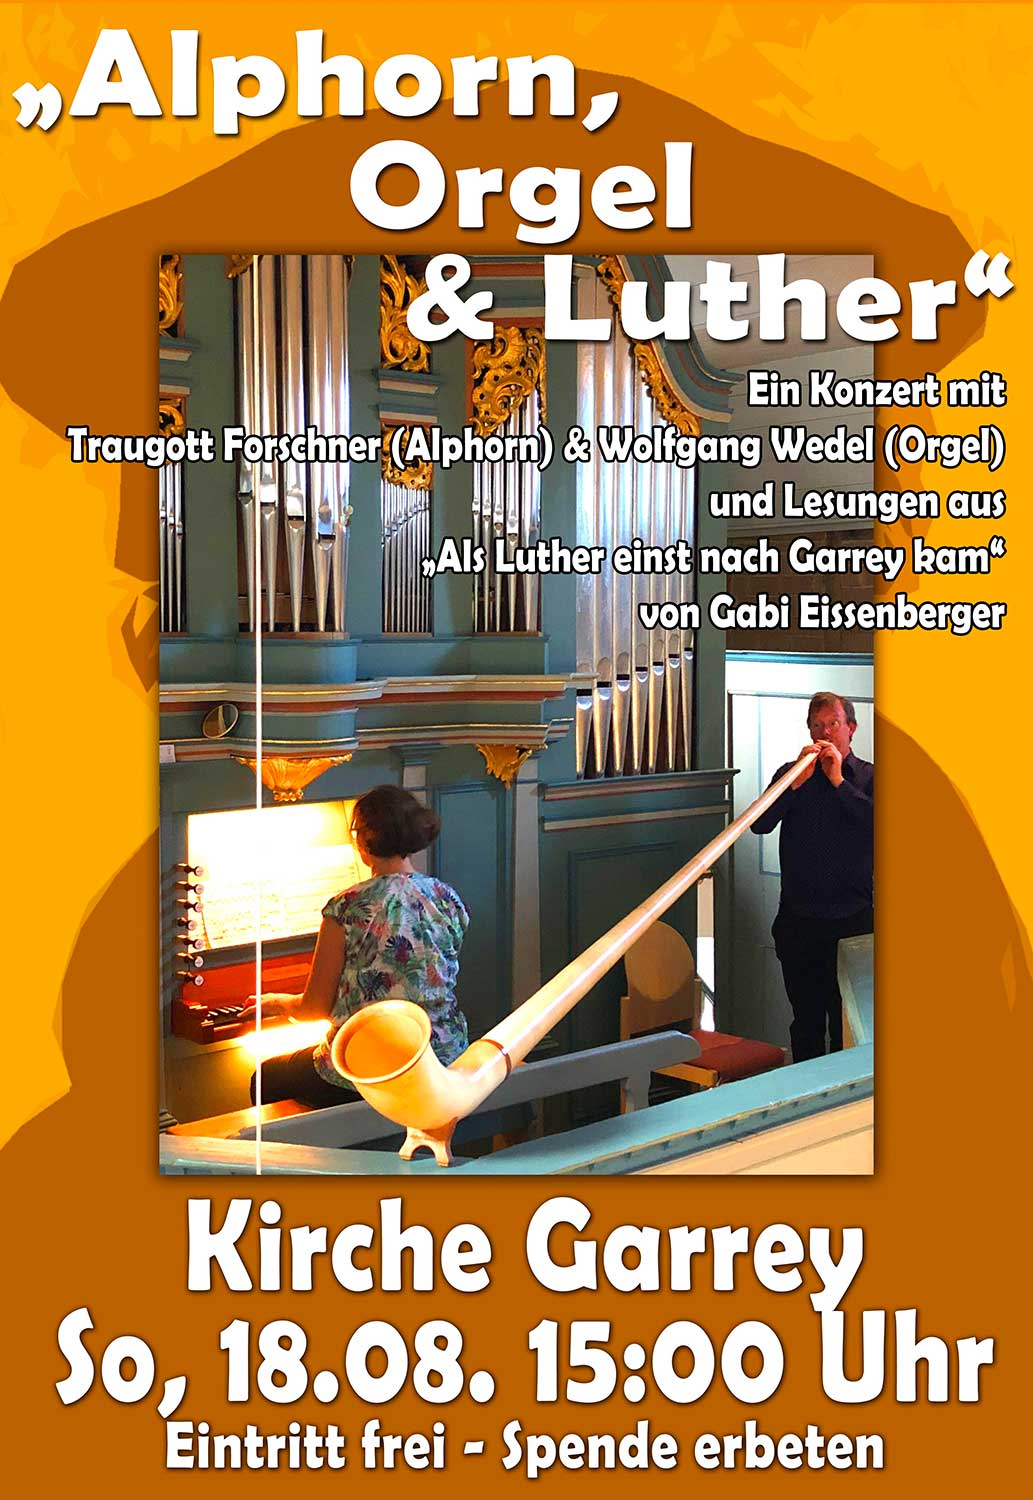 Alphorn-Orgel-Luther-2019